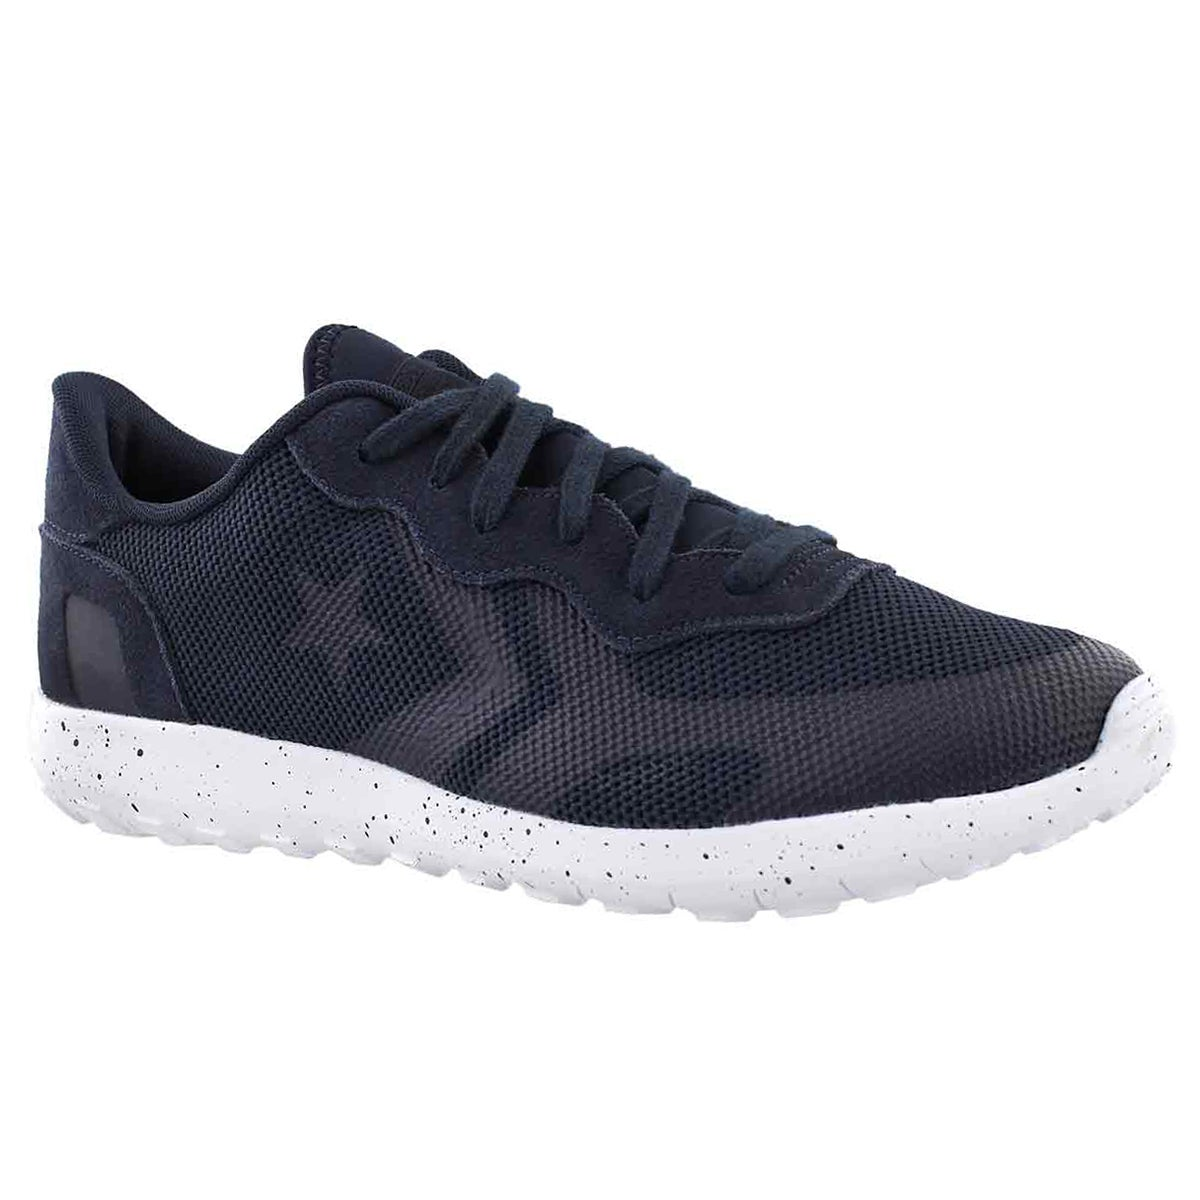 Men's THUNDERBOLT obsidian lace up sneakers